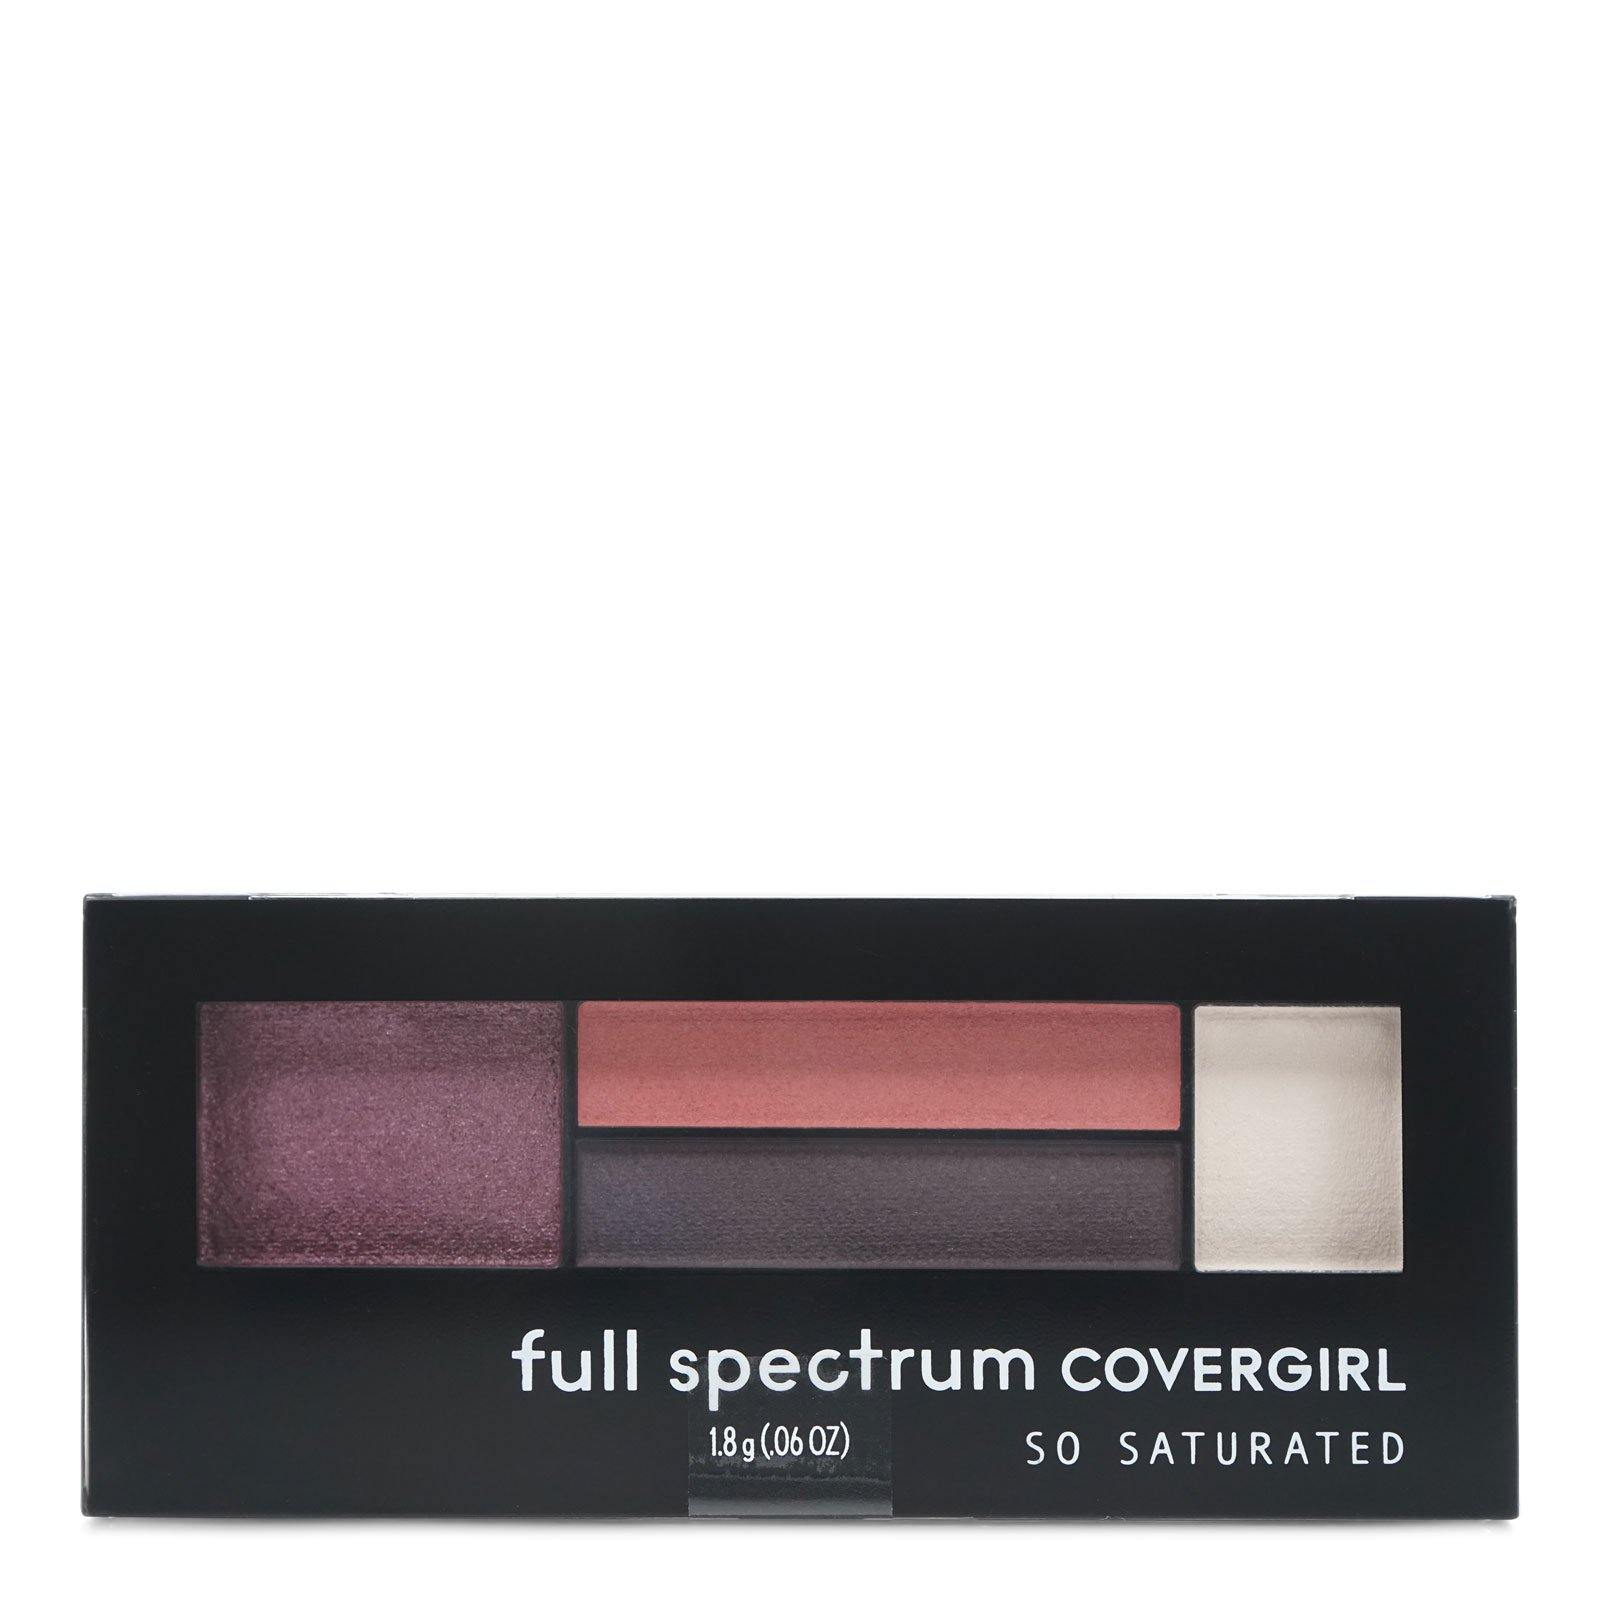 COVERGIRL SO SATURATED QUAD EYESHADOW - WITH IT (12/cs)